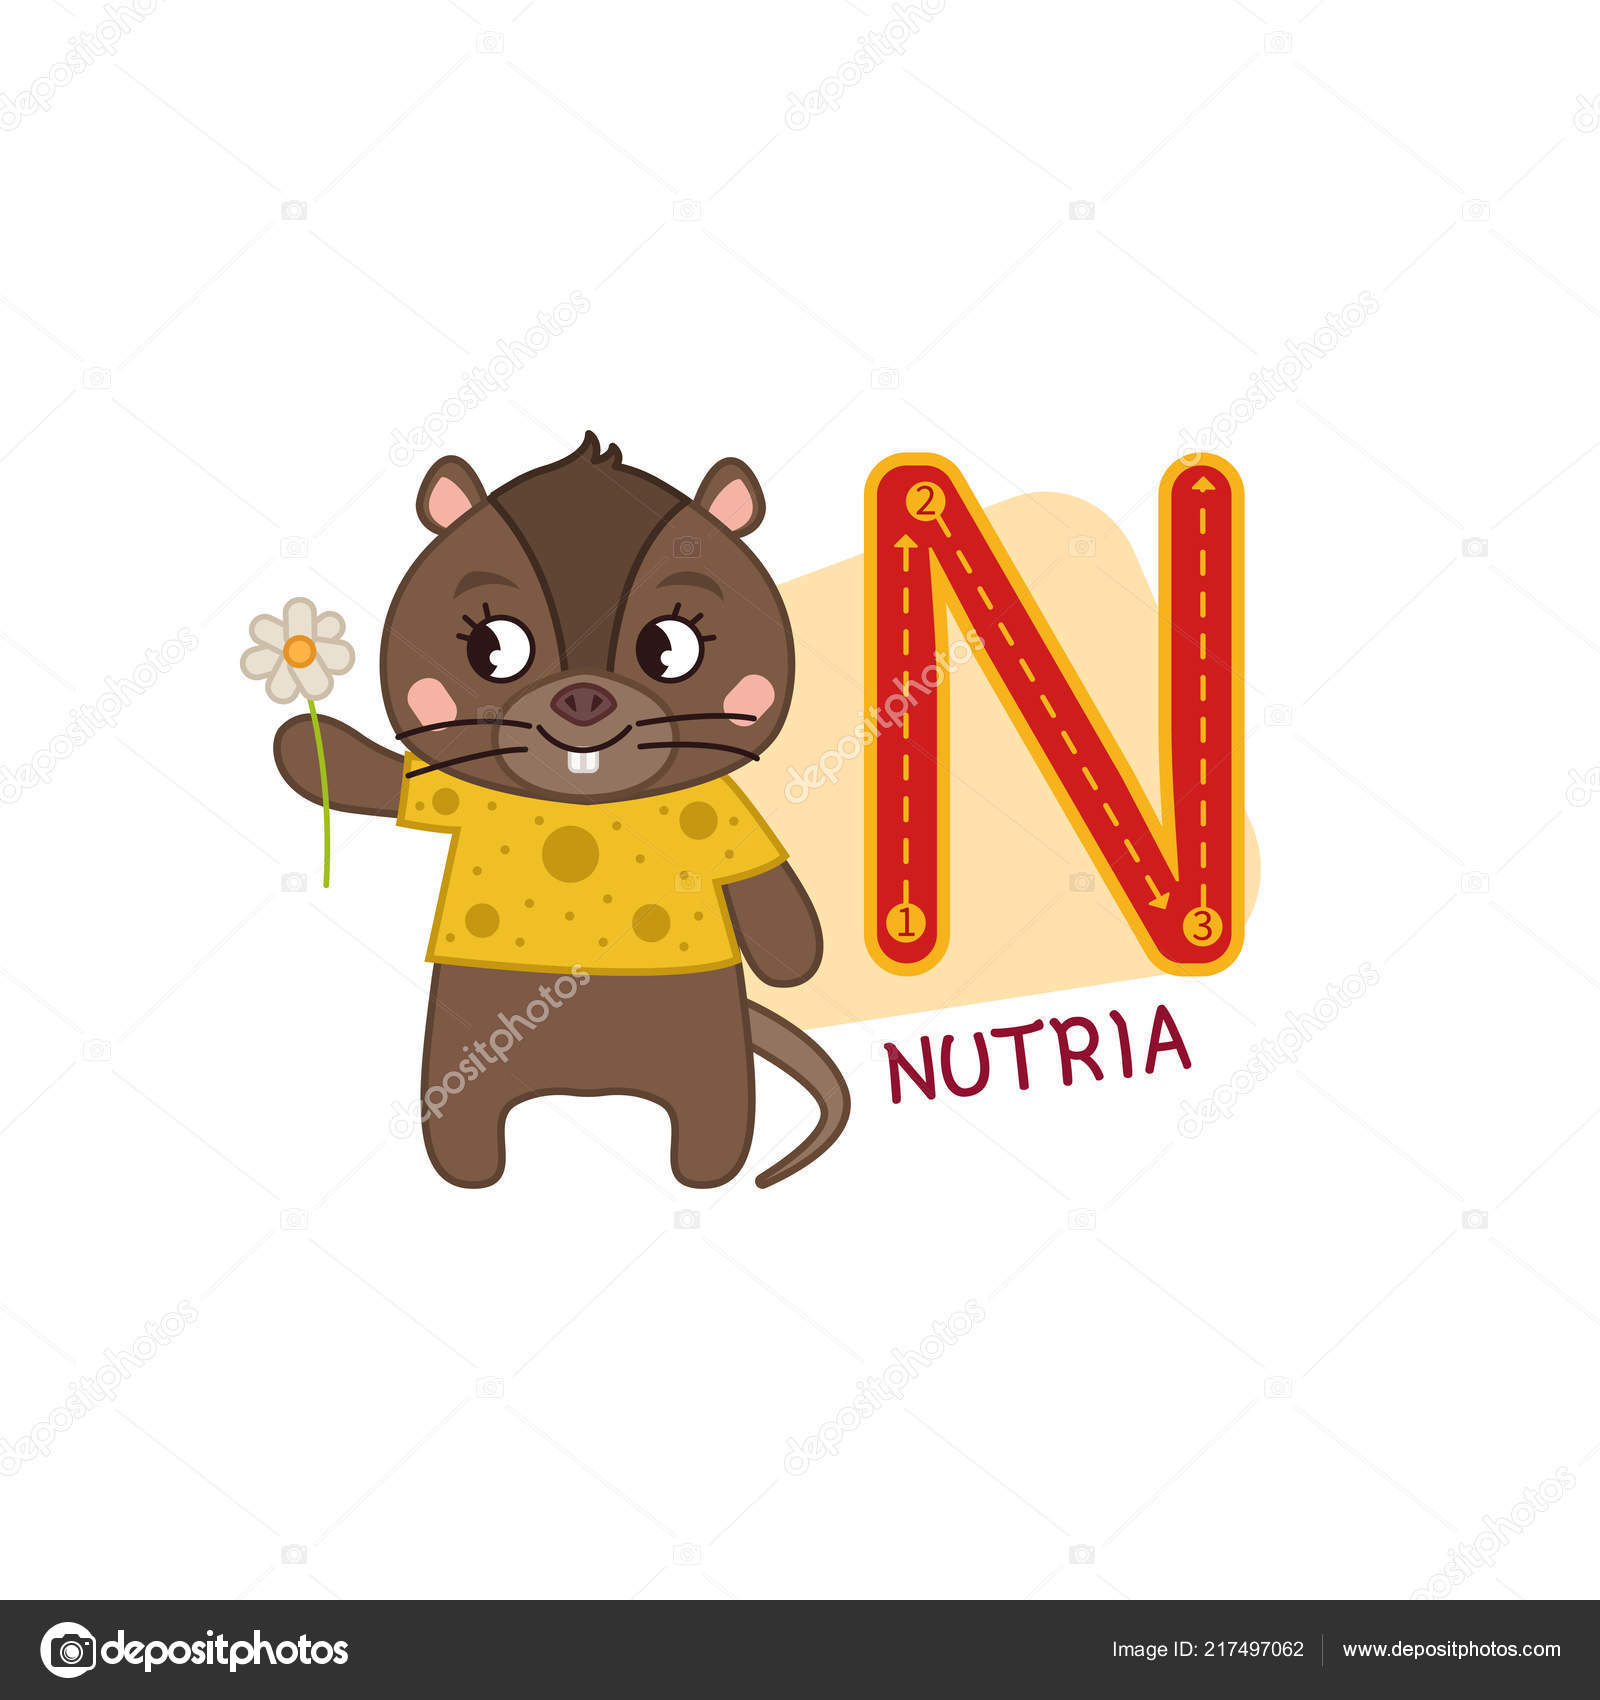 Image of: Letter Vector Cute Kids Animal Alphabet Letter N Cute Cartoon Nutria Vector By Igdeevaalena Depositphotos Vector Cute Kids Animal Alphabet Letter Cute Cartoon Nutria Stock